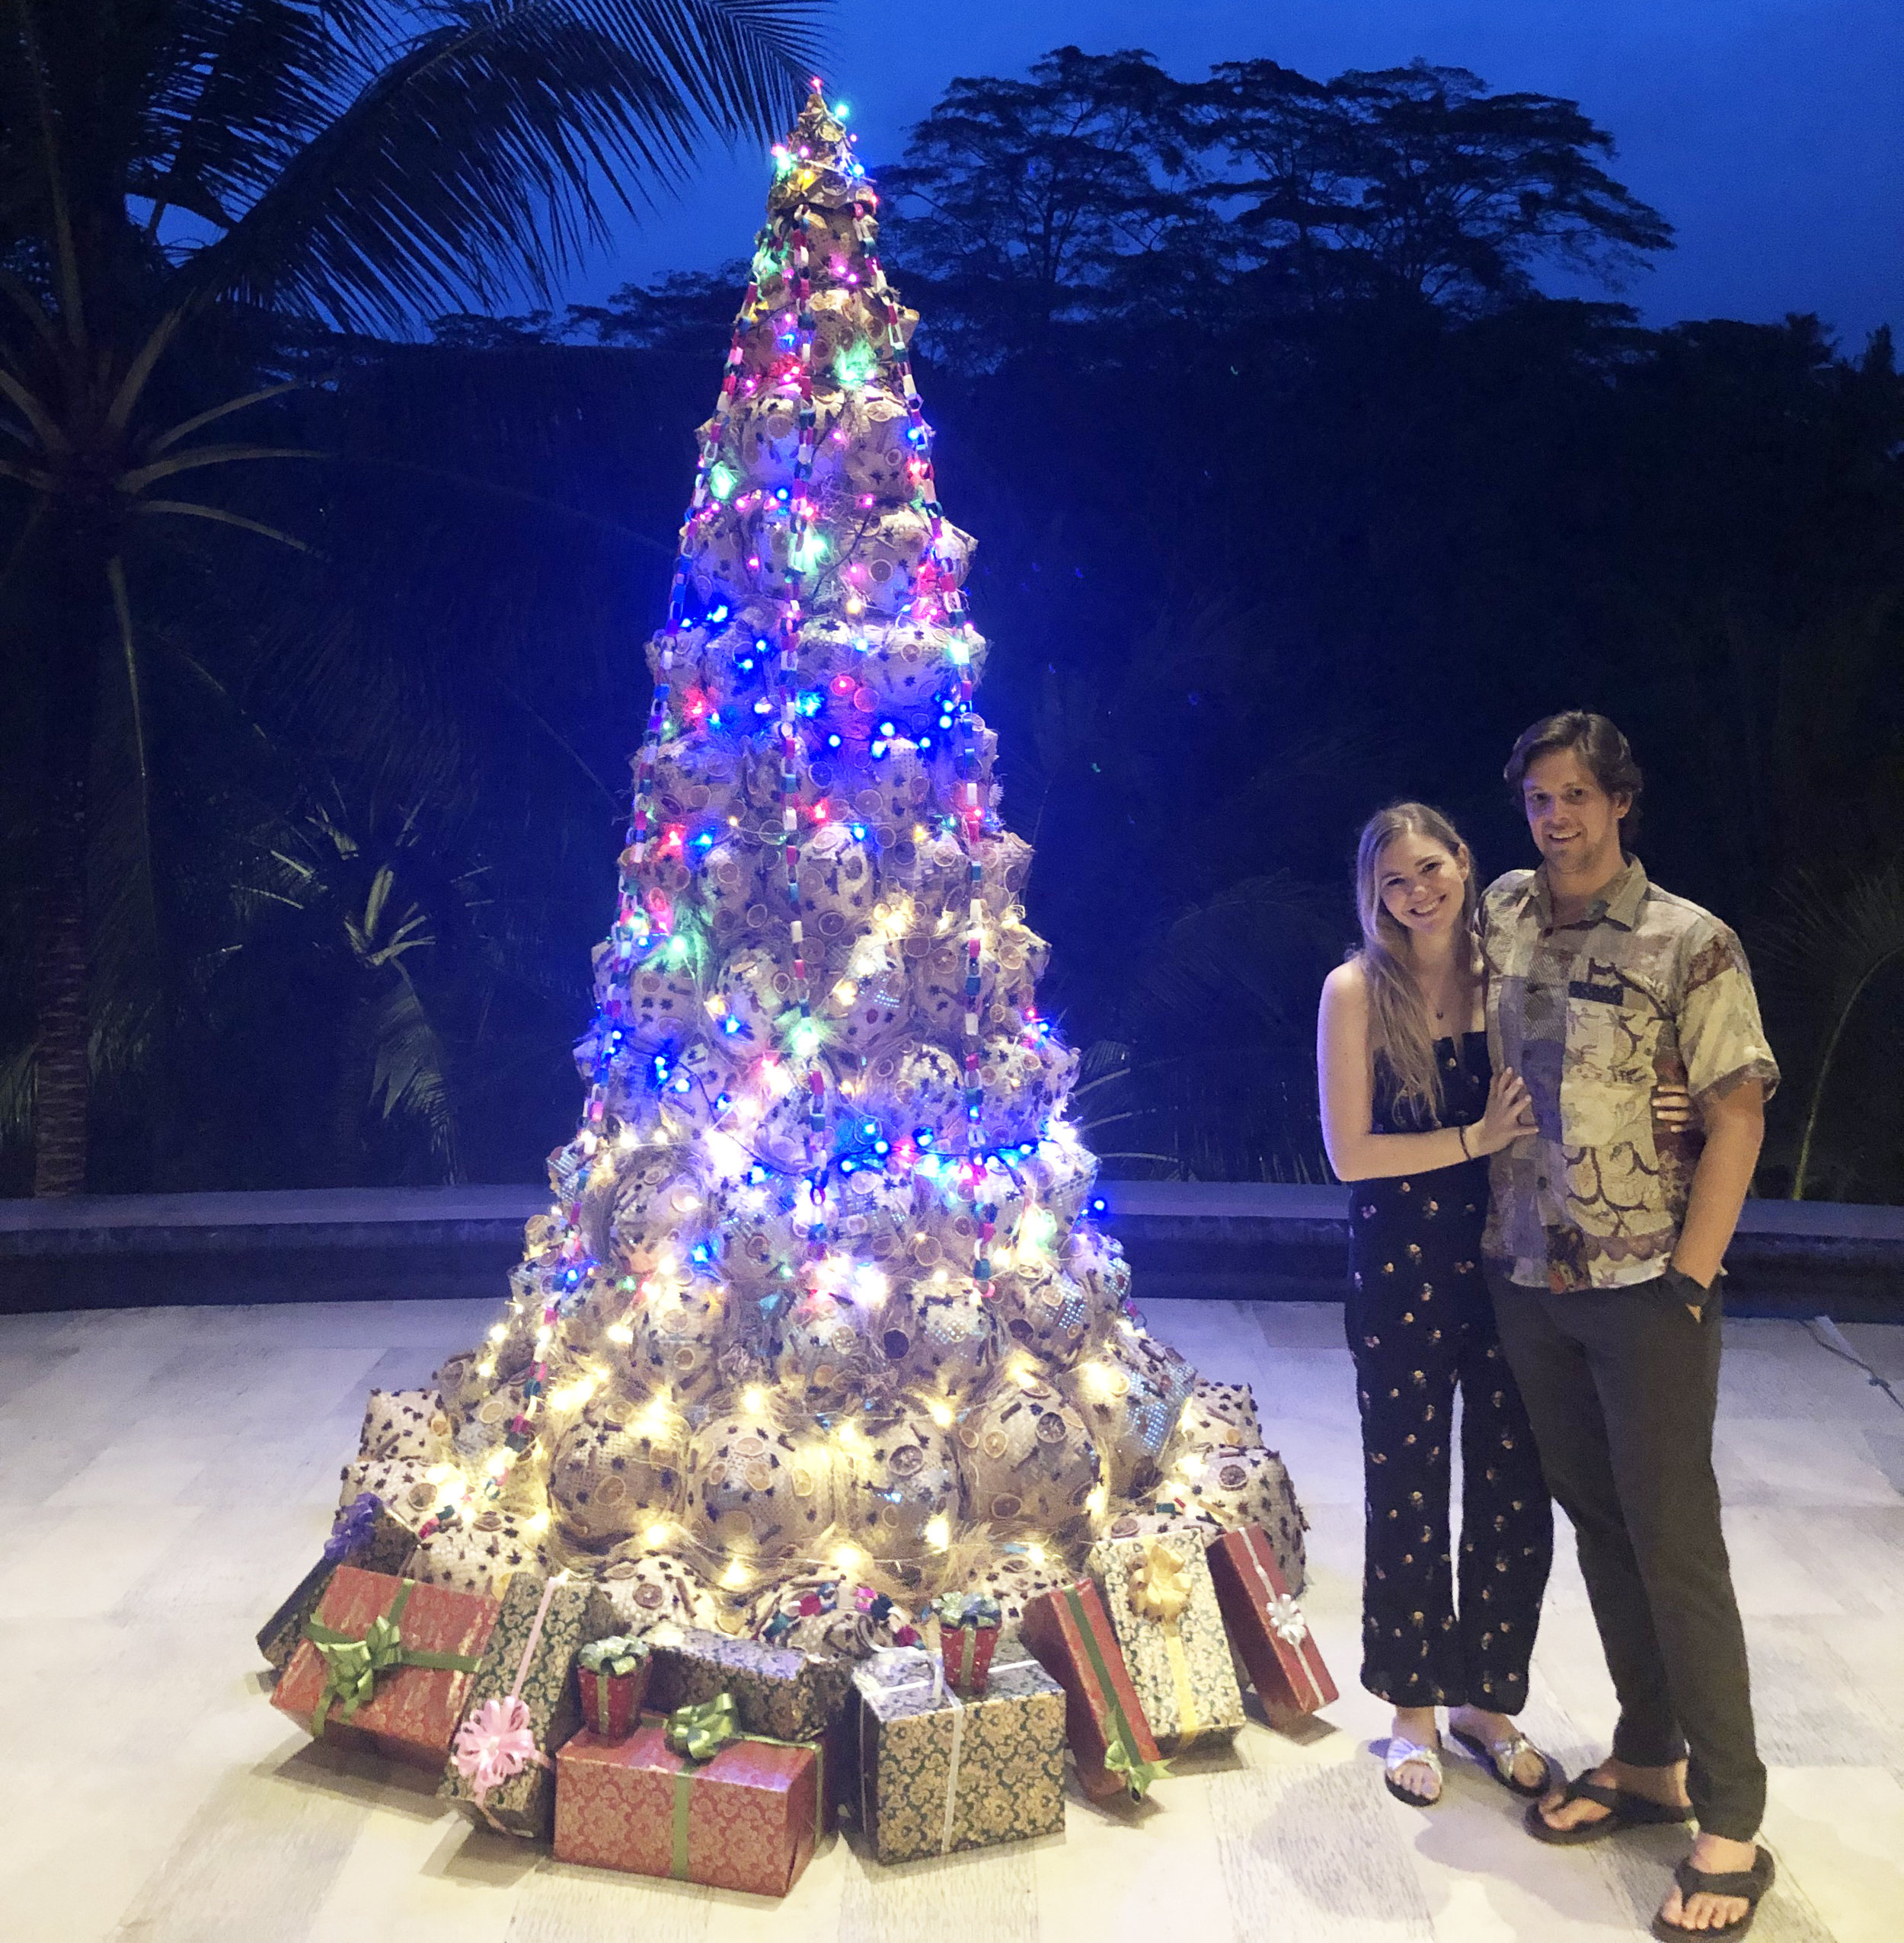 Tim & Dana: honeymoon to Chiang Mai, Bali - DECEMBER 2018Mary and the Living Big Travel team were the best money we spent on our honeymoon! They took us from largely unplanned three months out to a detailed 16 days of amazing adventure. Mary and the team helped us figure out the timeline of events (or the puzzle, as Mary likes to call it) to best maximize our dollar. She also opened our eyes to some amazing experiences—Chakra rituals in Ubud! Elephants in northern Thailand! We would recommend Living Big Travel to anyone looking to get the most out of their honeymoon.